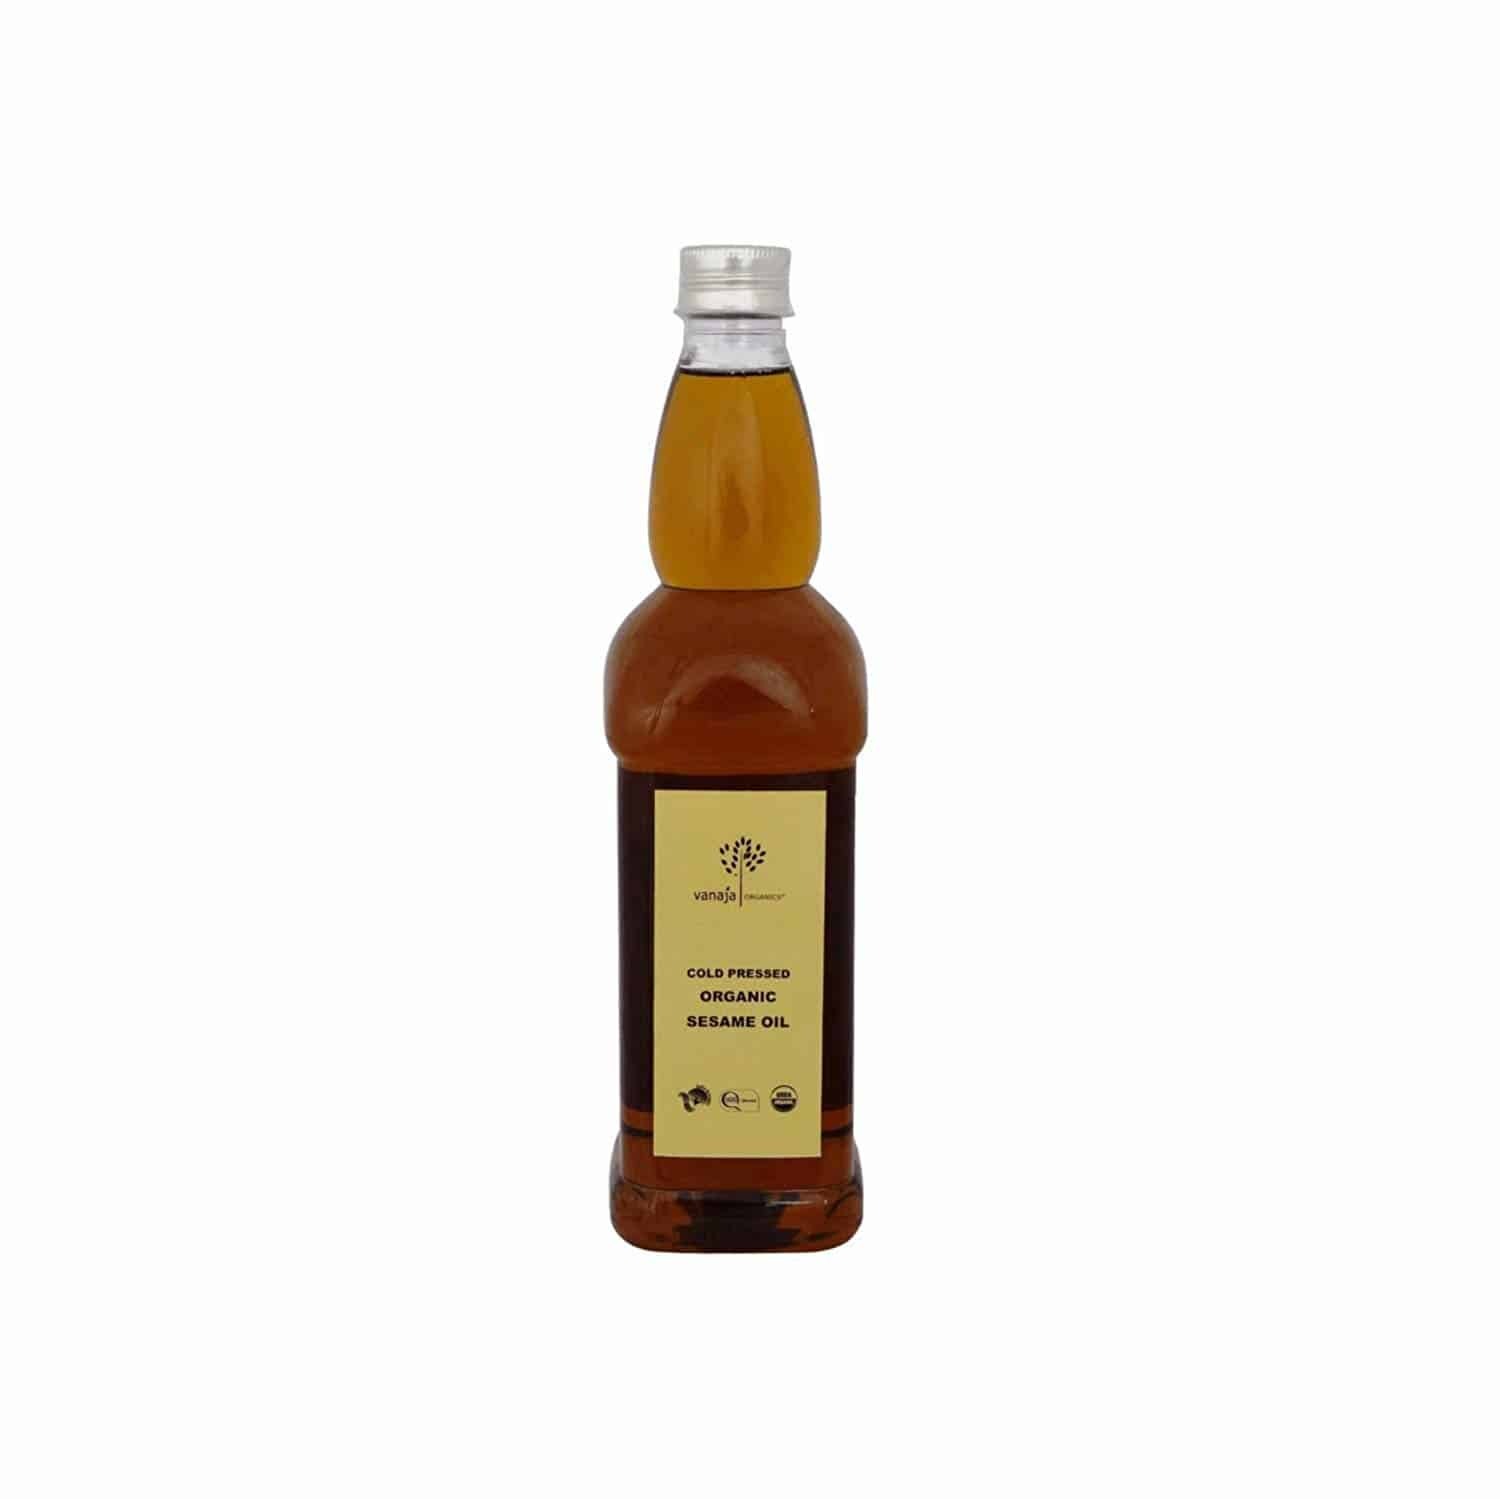 VANAJA ORGANICS Cold Pressed Sesame Oil (100 % Organic Sesame Oil) 750 ML  Price:	   270 Click here for buy : https://amzn.to/2T2JTlh Cold pressed Sesame oil – Physically filtered Healthy Skin and Hair Improves Bone Quality